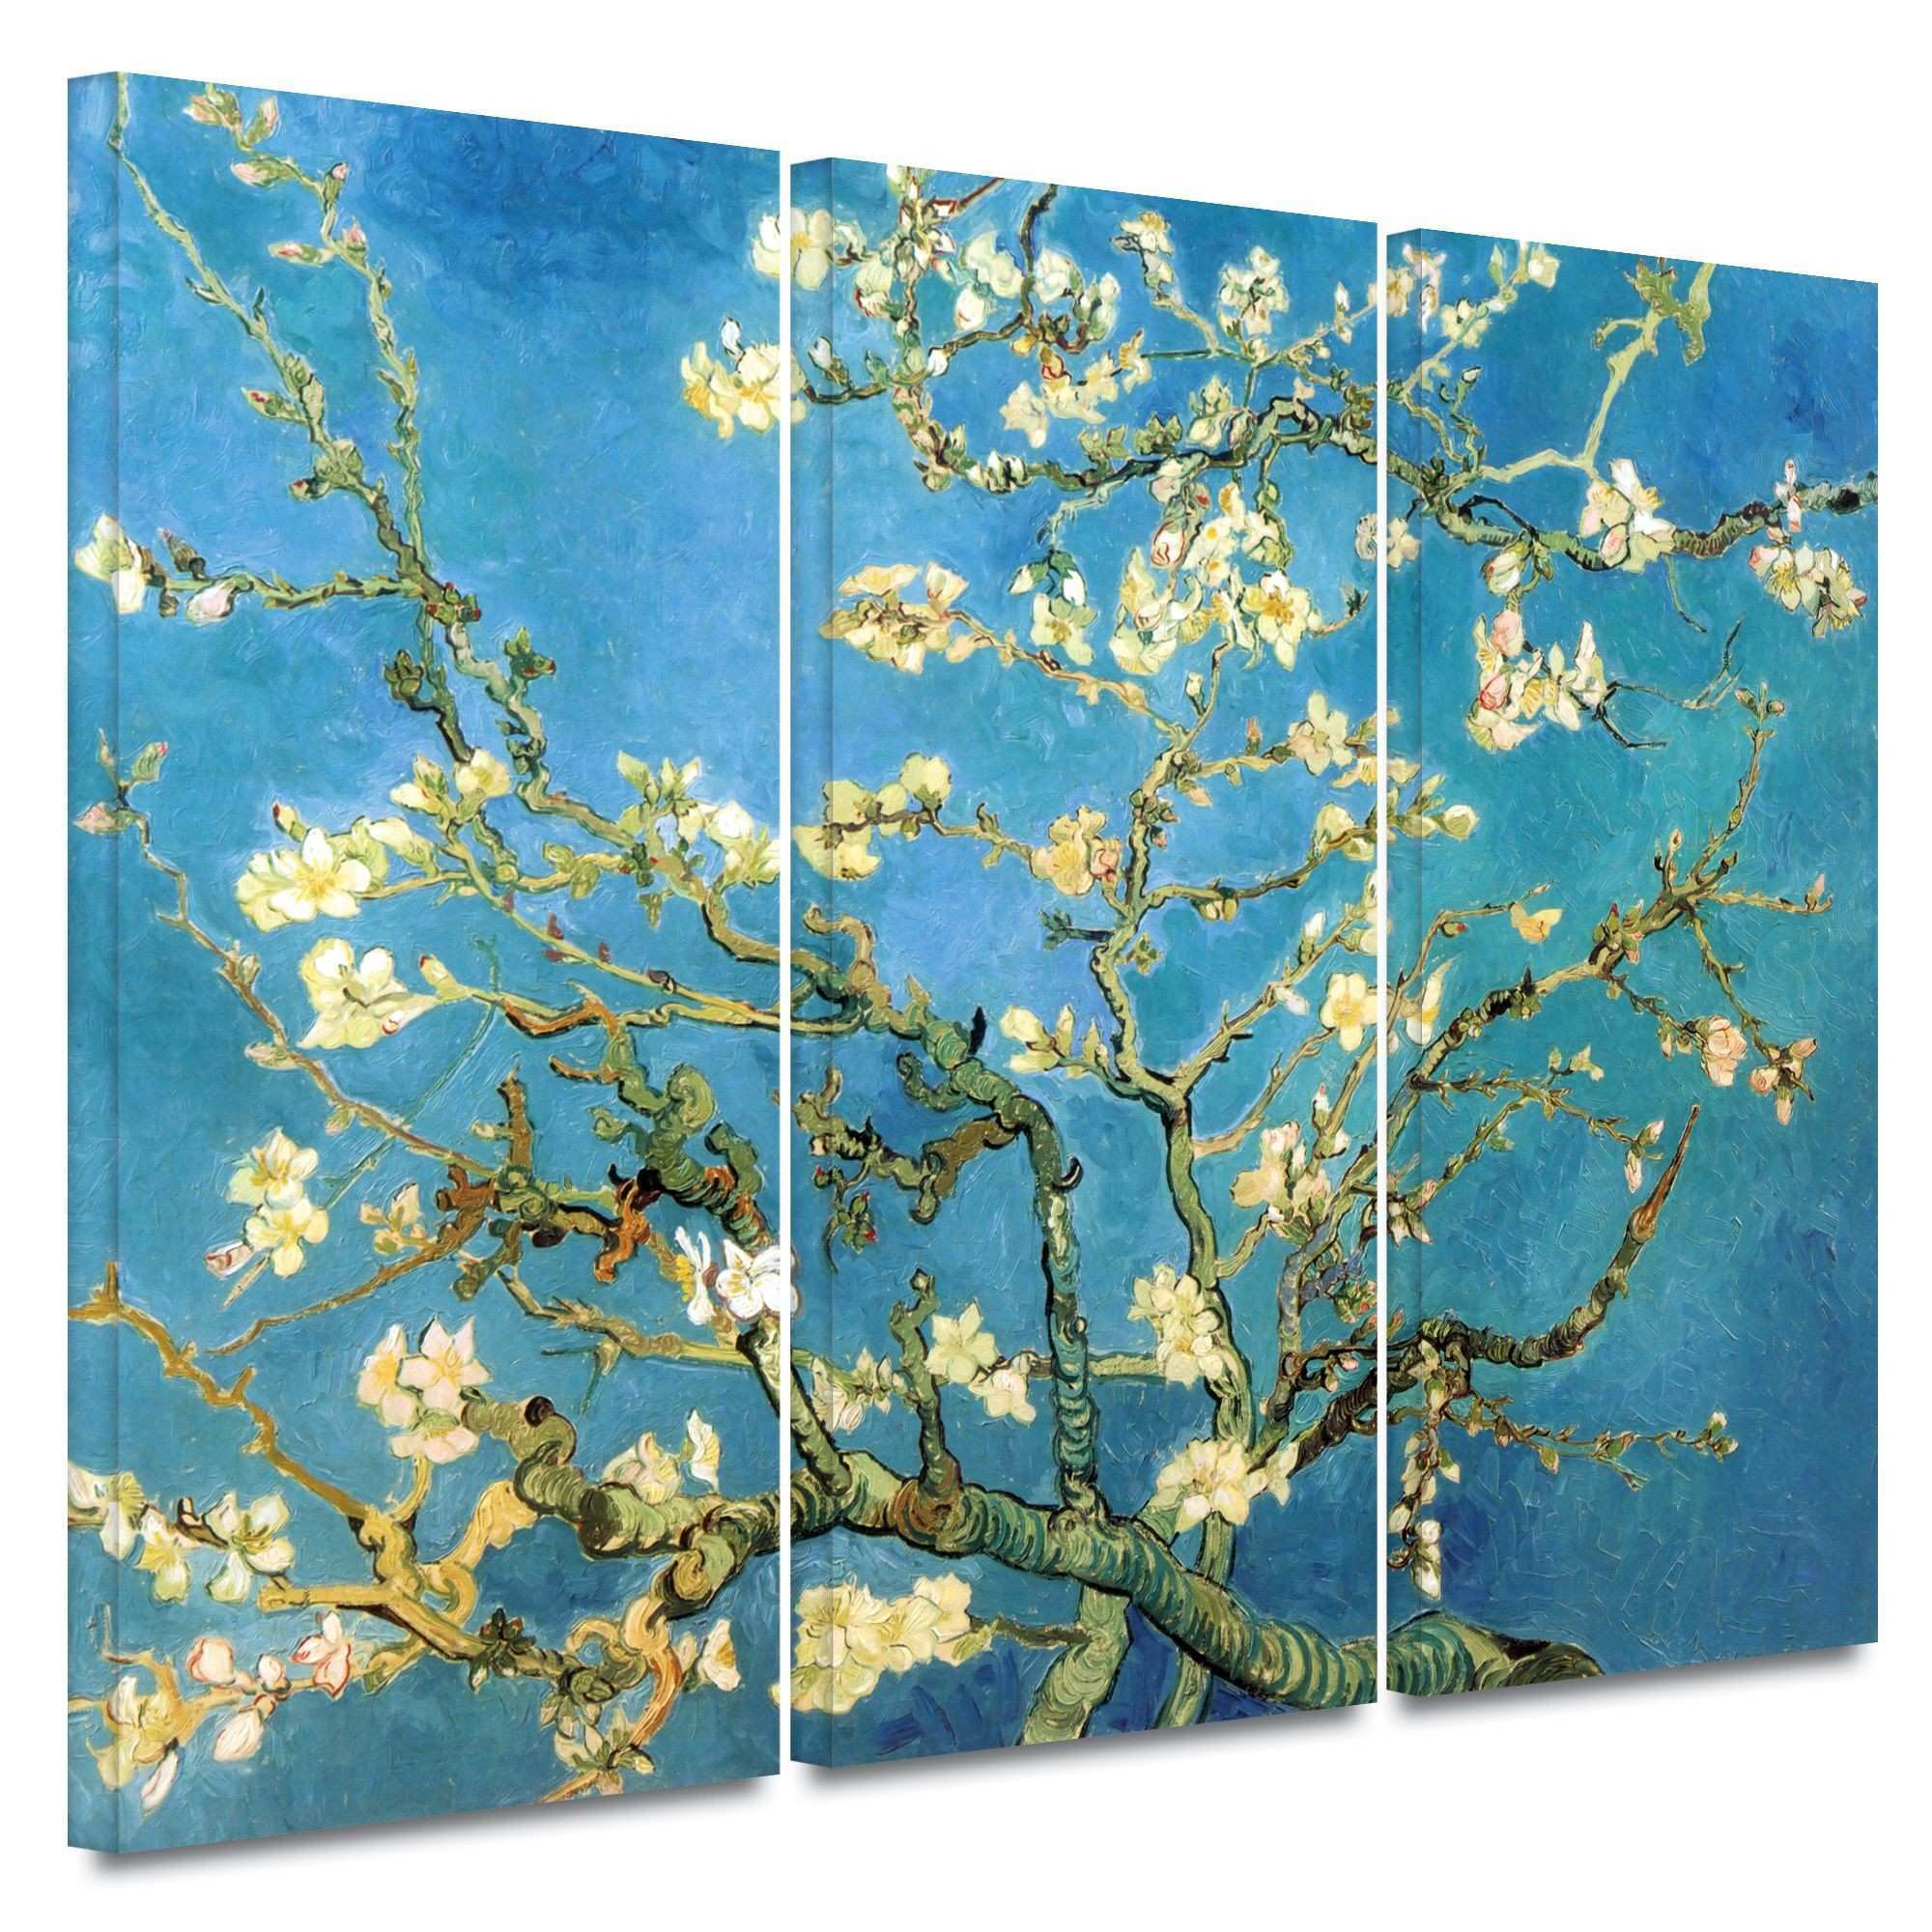 "Almond Blossom"" by Vincent Van Gogh 3 Piece Canvas Painting Print"